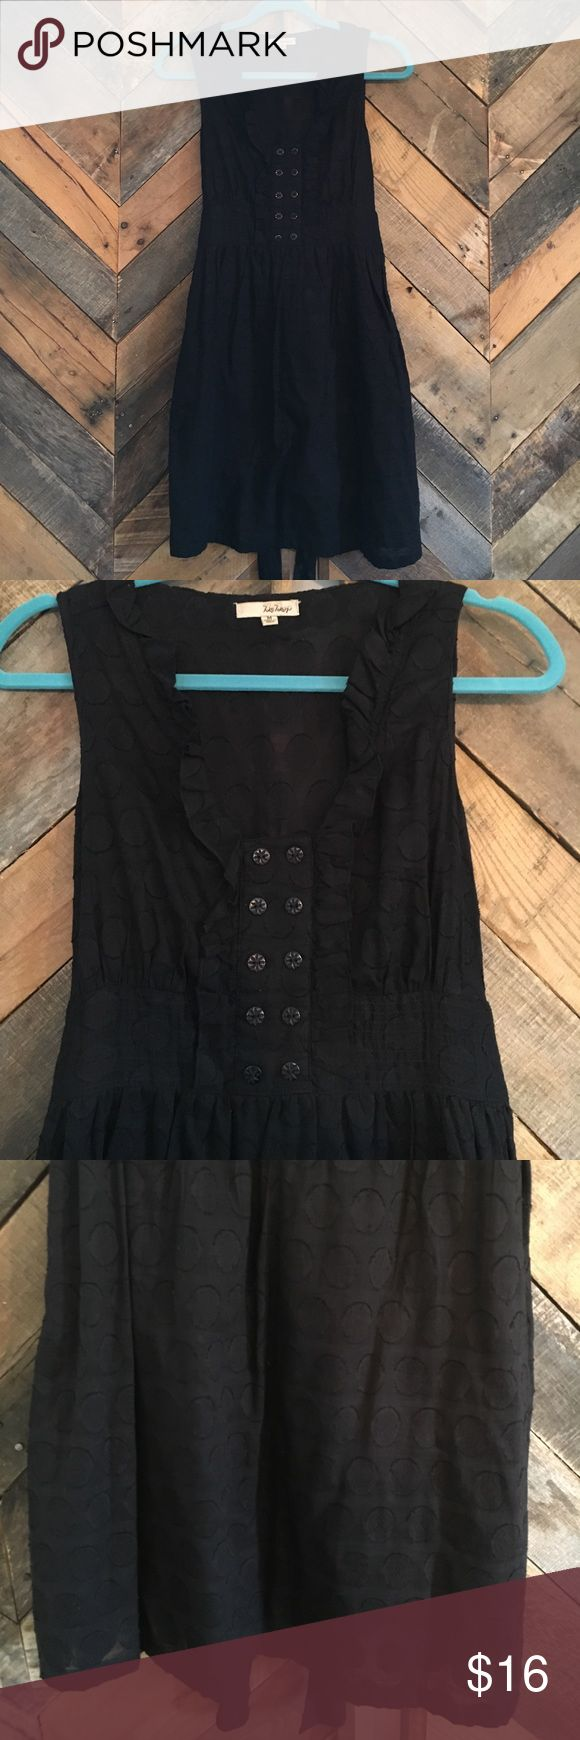 """Be Bop Black Dress Black 100% cotton sundress. Light and airy with a dot textured material. Super cute & flattering. Labeled a M but fits like a S/M. Has a fun button detailing and slight ruffle at the bust and down the front. Wish I could still fit into this! Skirt is fully lined. Bodice and top material is sheer-ish making it lightweight but you don't actually need to wear anything underneath as it's not see through. Is casual but can be dressed up! Hits just above the knee. Bust 18""""…"""